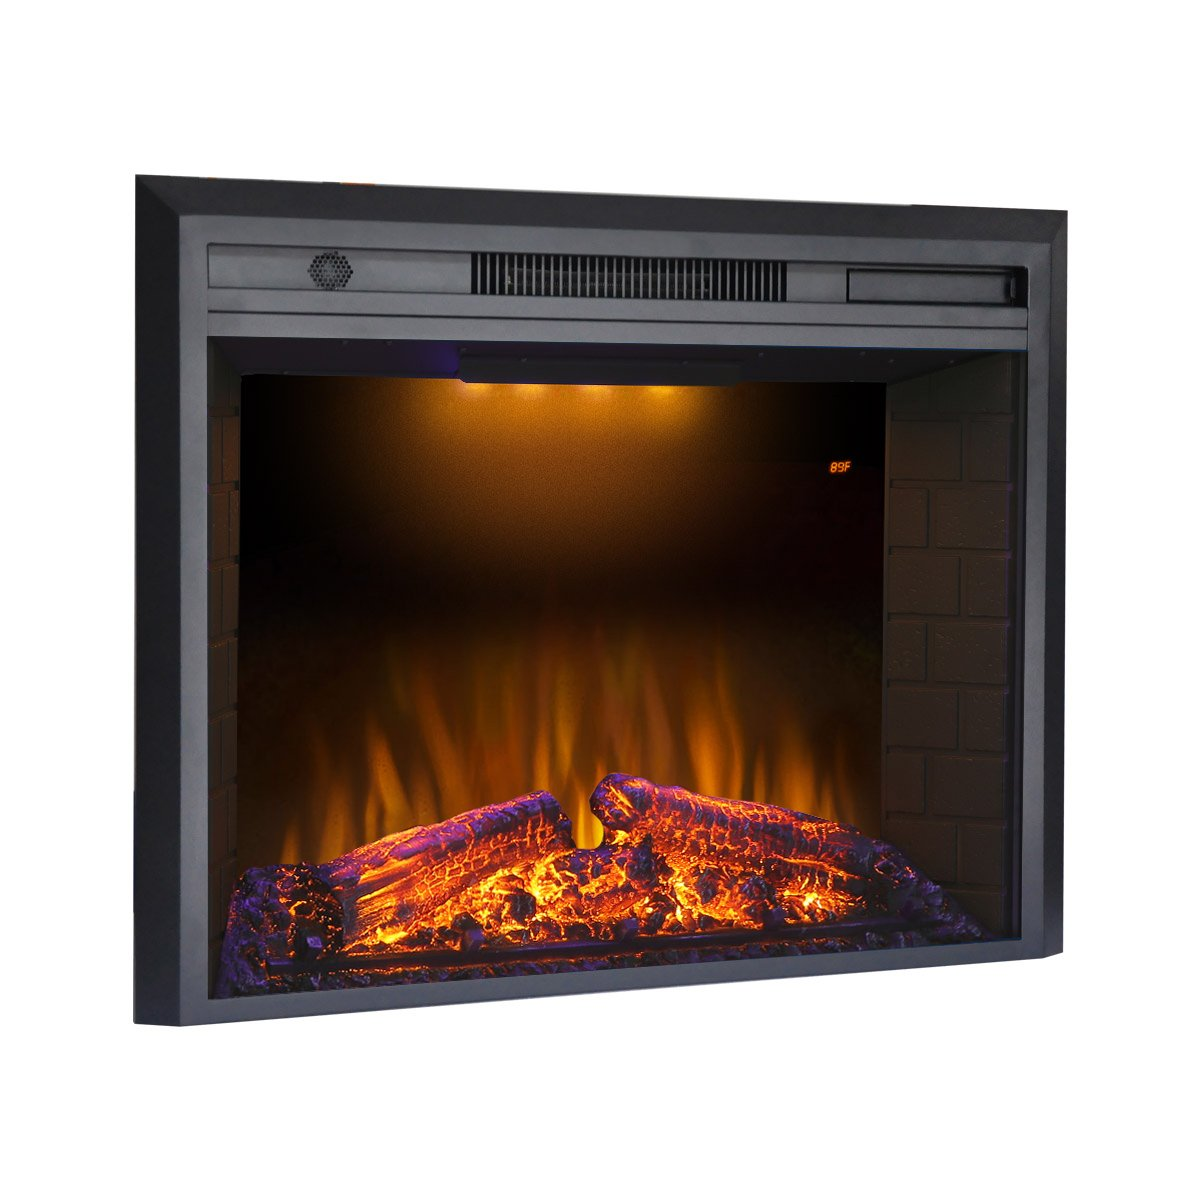 "Valuxhome Houselux 36"" 750W/1500W, Electric Fireplace Black Friday Deals"